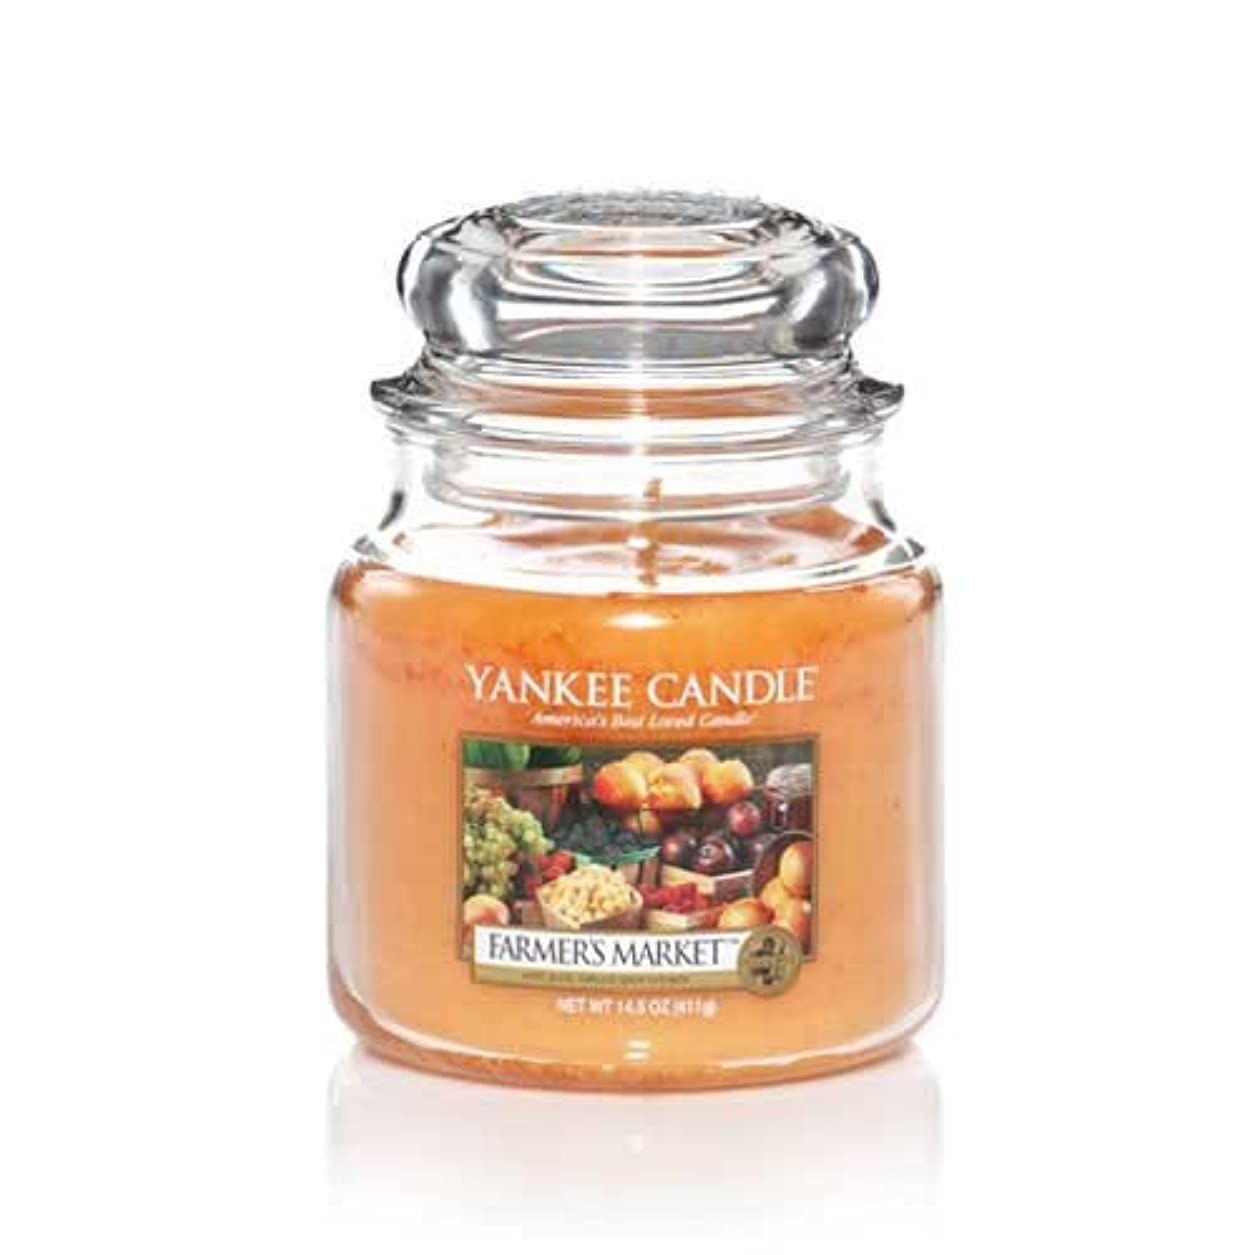 おじいちゃんクラッチ債務Yankee Candle Farmer 's Market Medium Jar Candle, Food & Spice香り